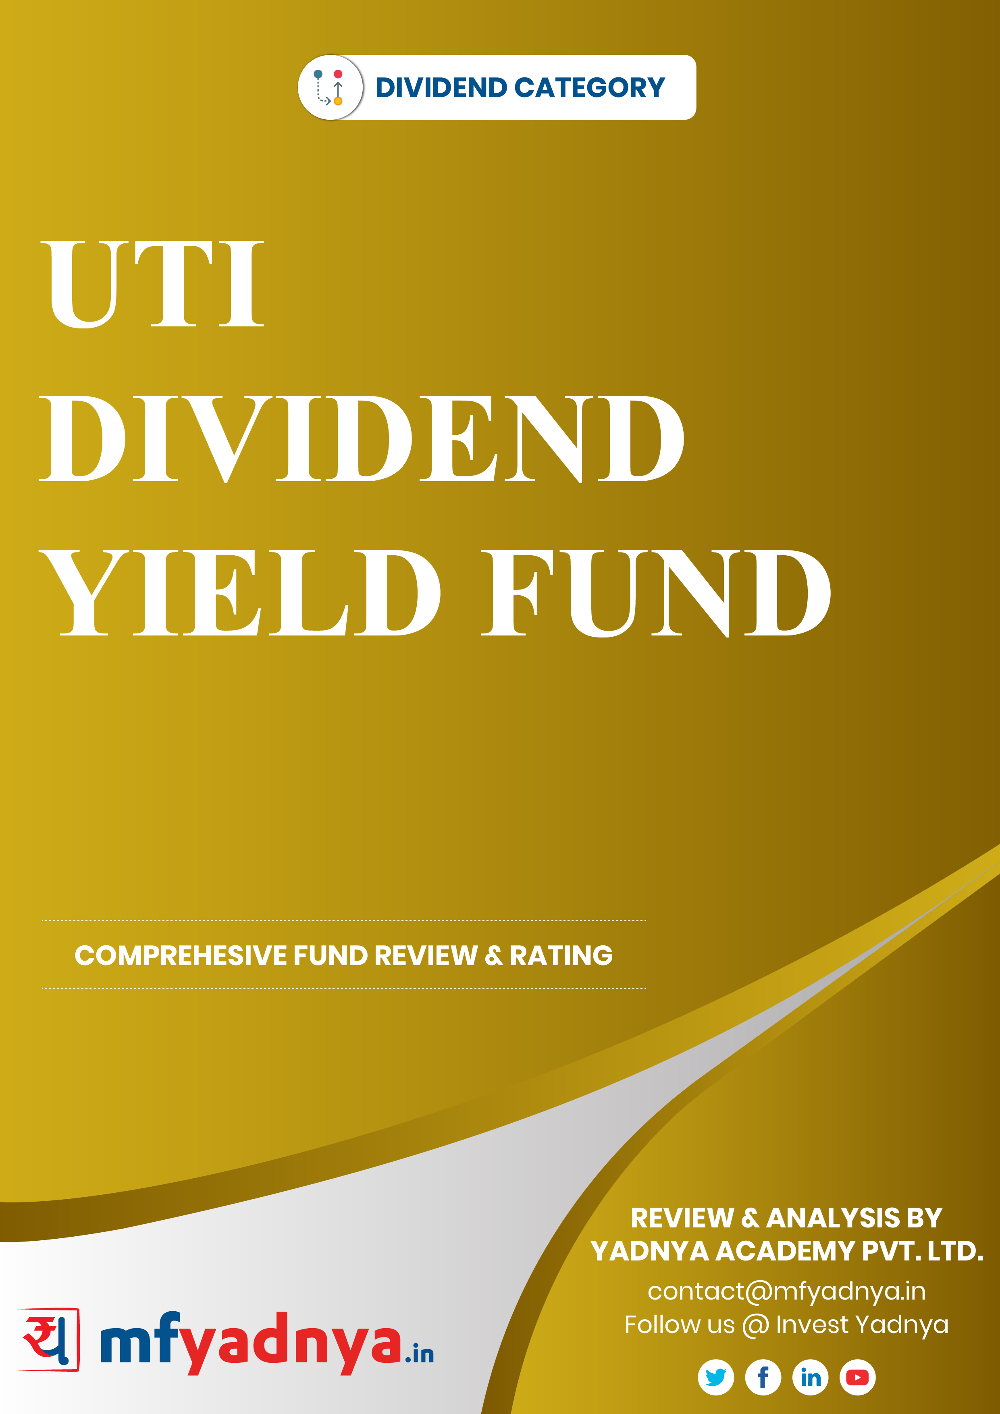 This e-book offers a comprehensive mutual fund review of UTI Dividend Yield Fund. It reviews the fund's return, ratio, allocation etc. ✔ Detailed Mutual Fund Analysis ✔ Latest Research Reports